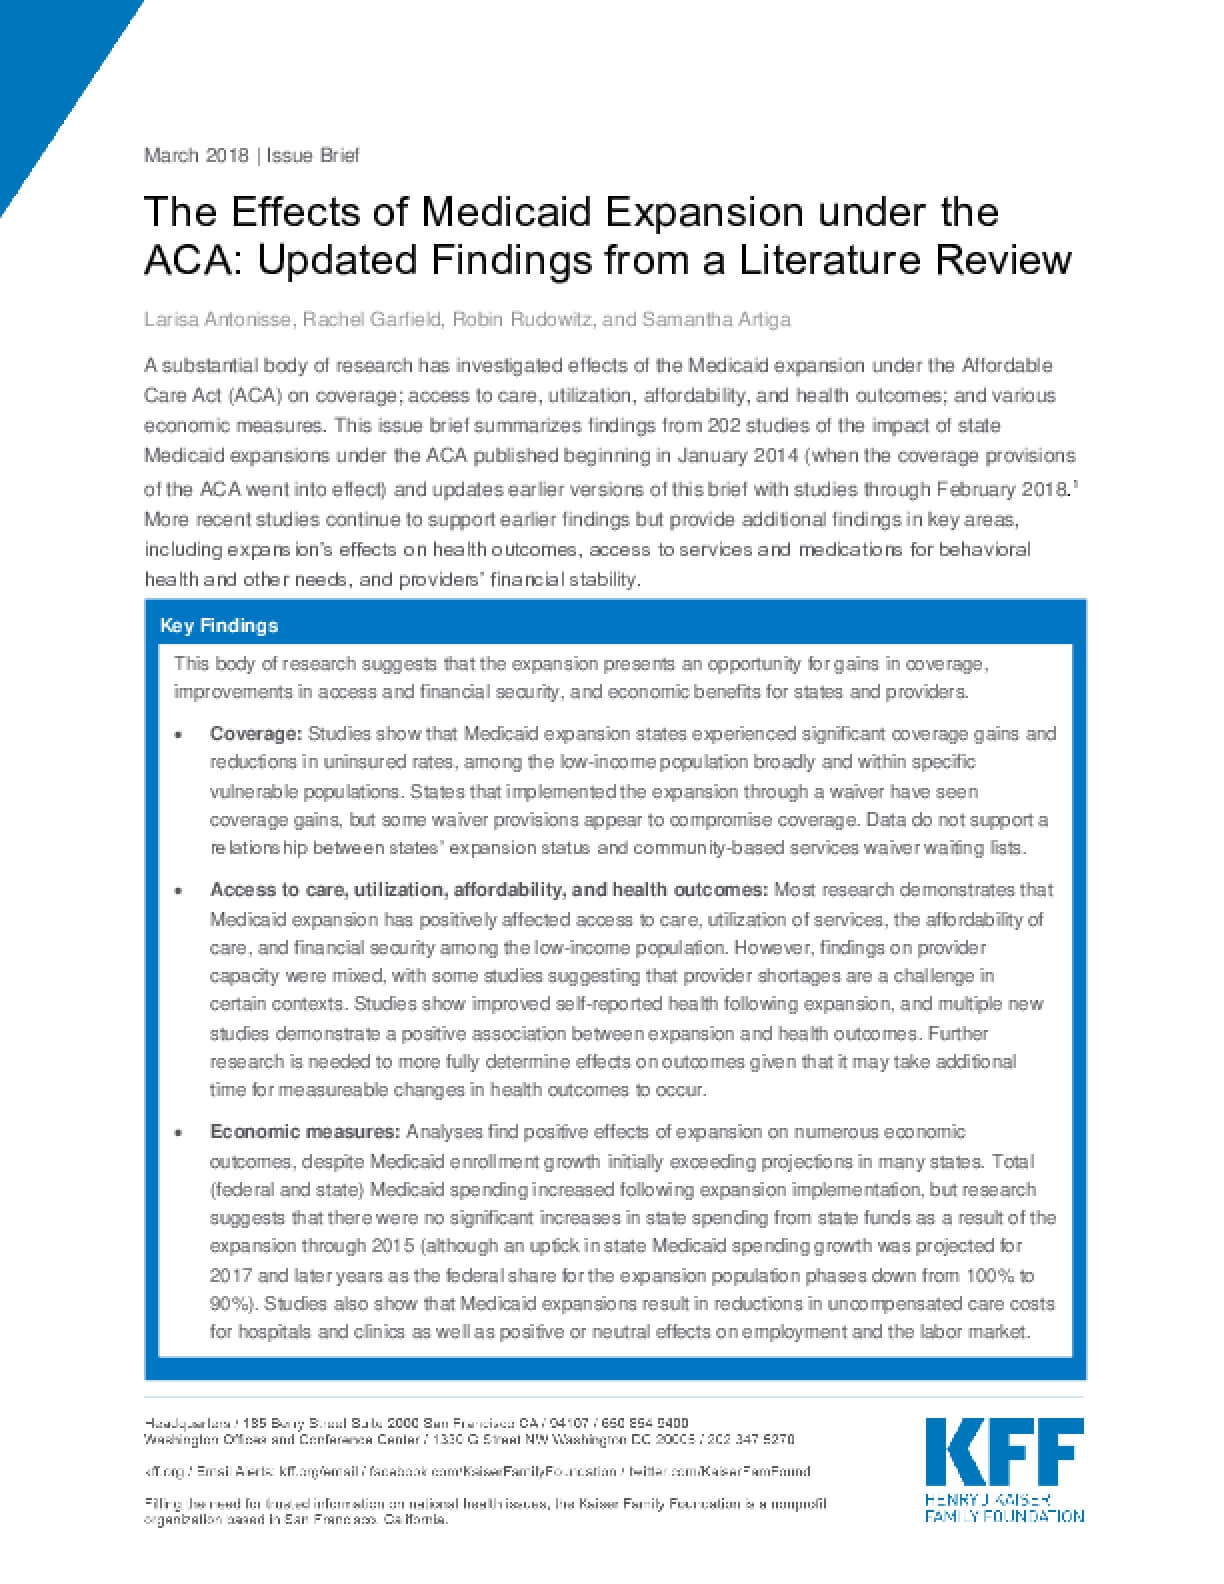 The Effects of Medicaid Expansion under the ACA: Updated Findings from a Literature Review